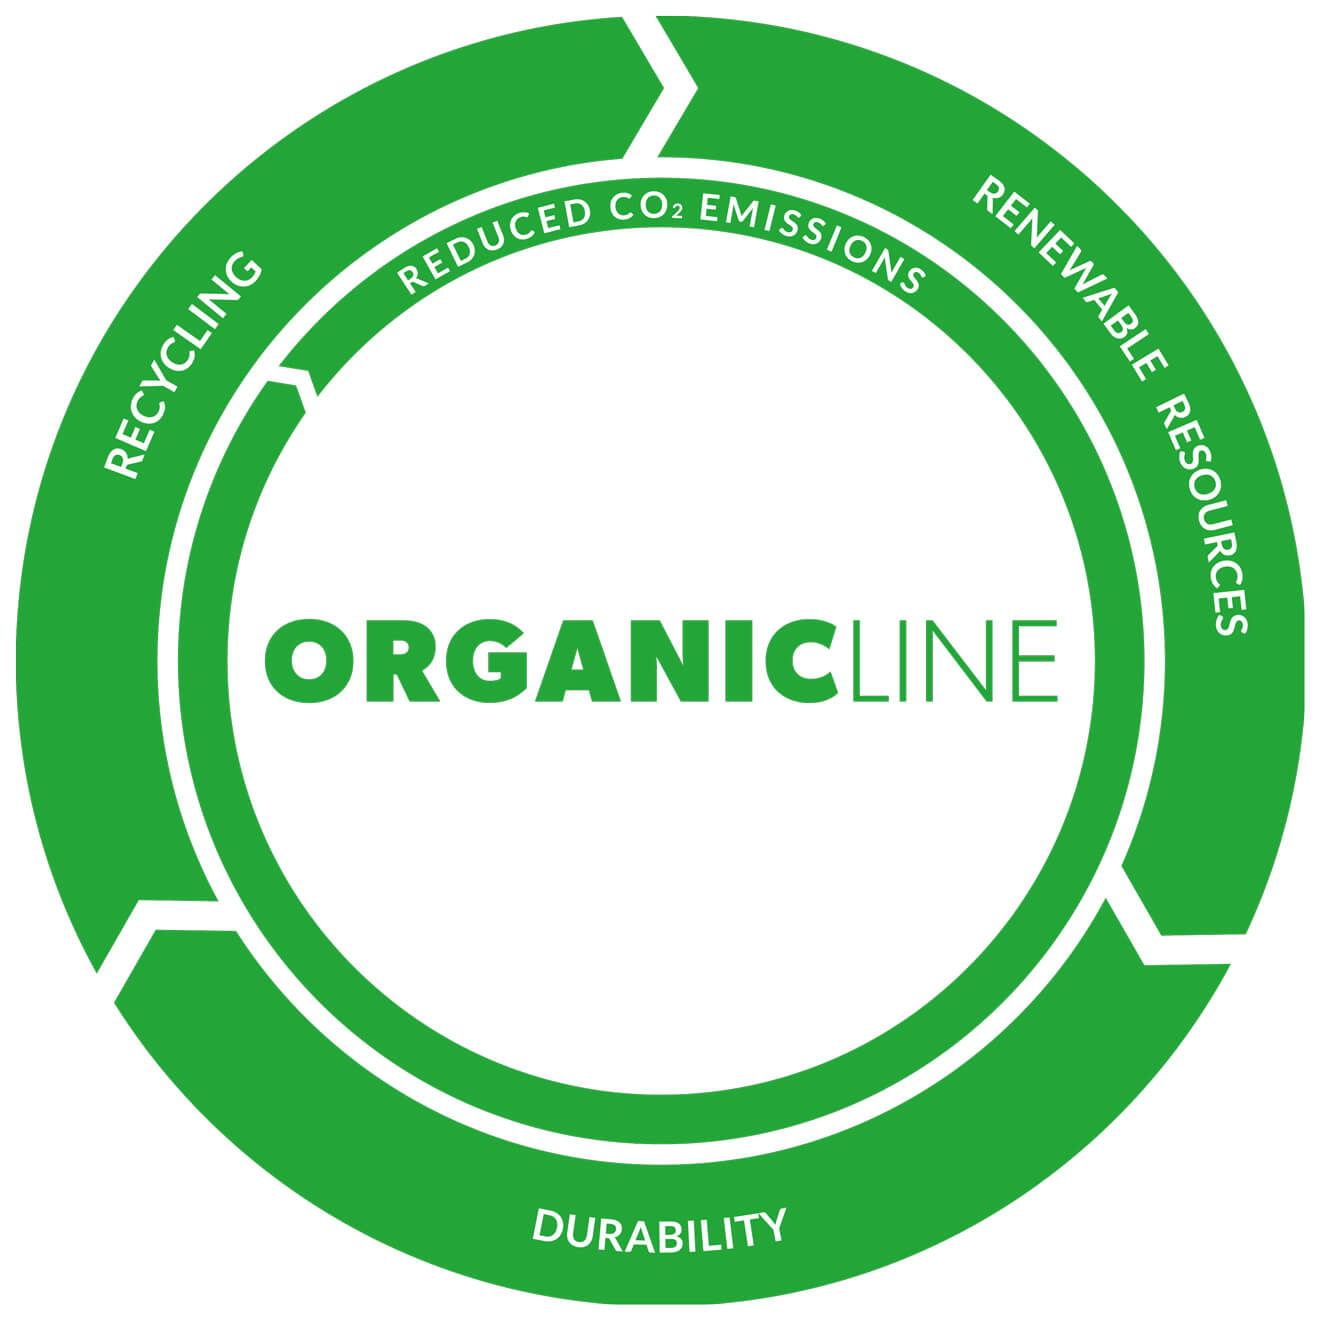 Circle and Recycling Circulation of ORGANICLINE